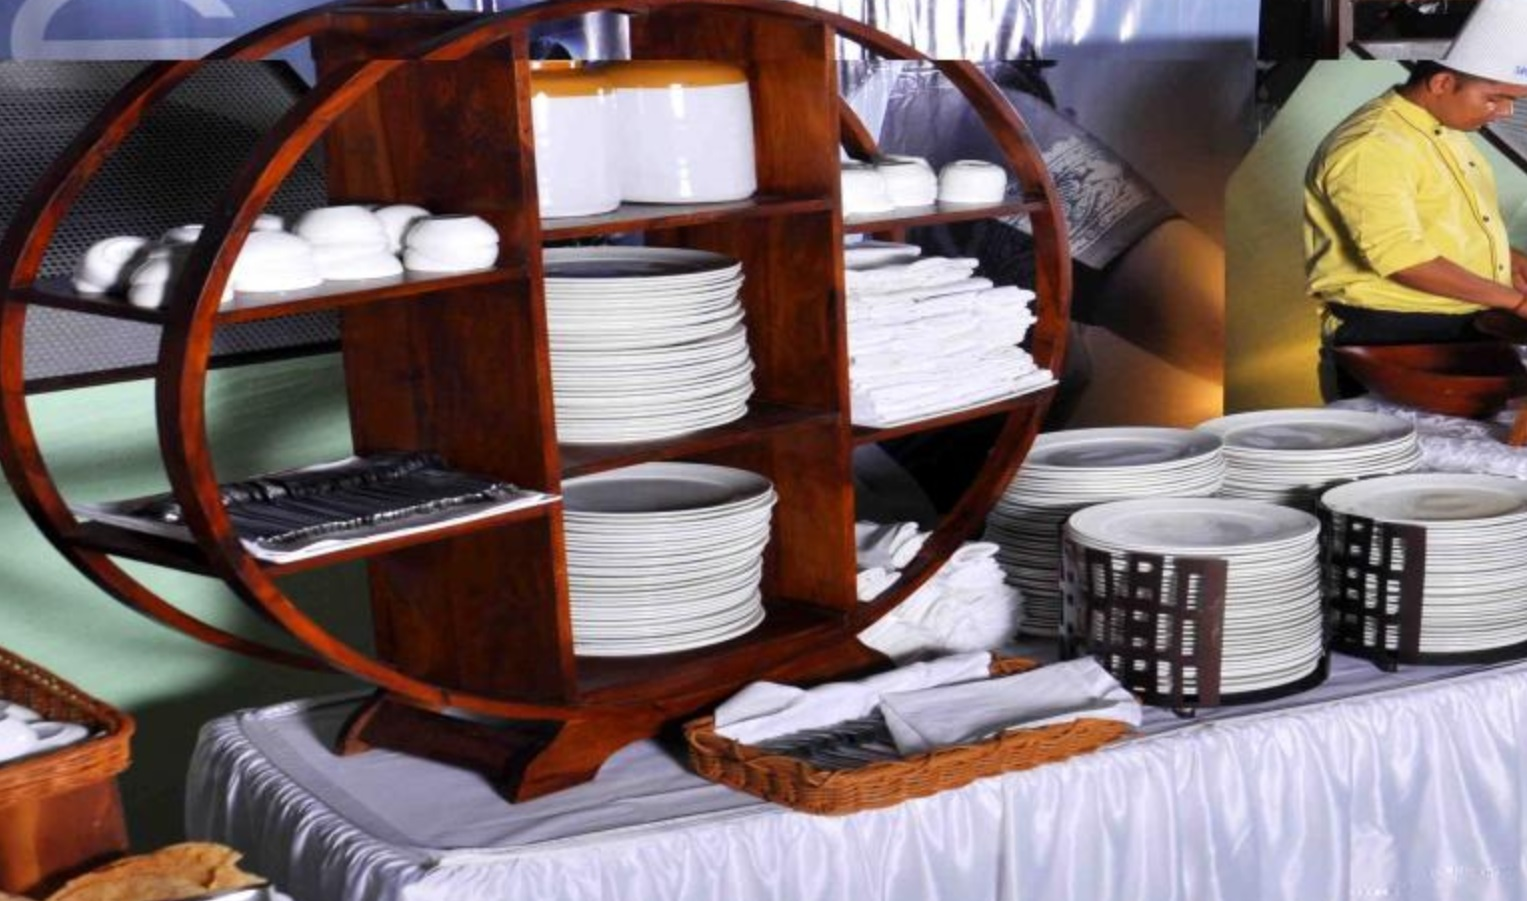 Moets Catering Service